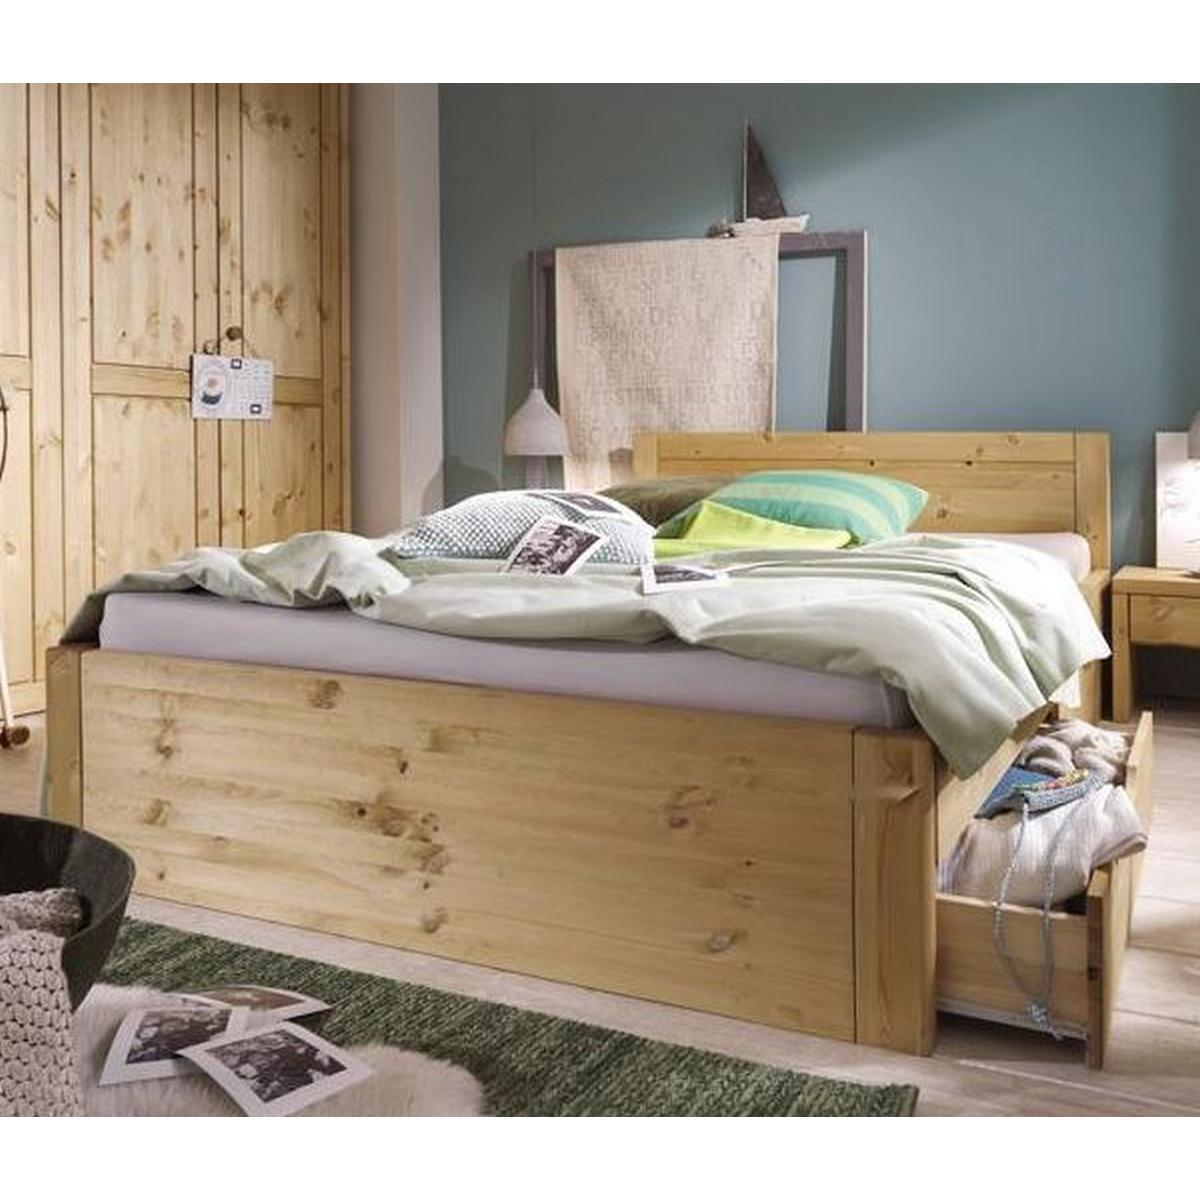 doppelbetten mit schubaden 200x200 holz kiefer massiv. Black Bedroom Furniture Sets. Home Design Ideas